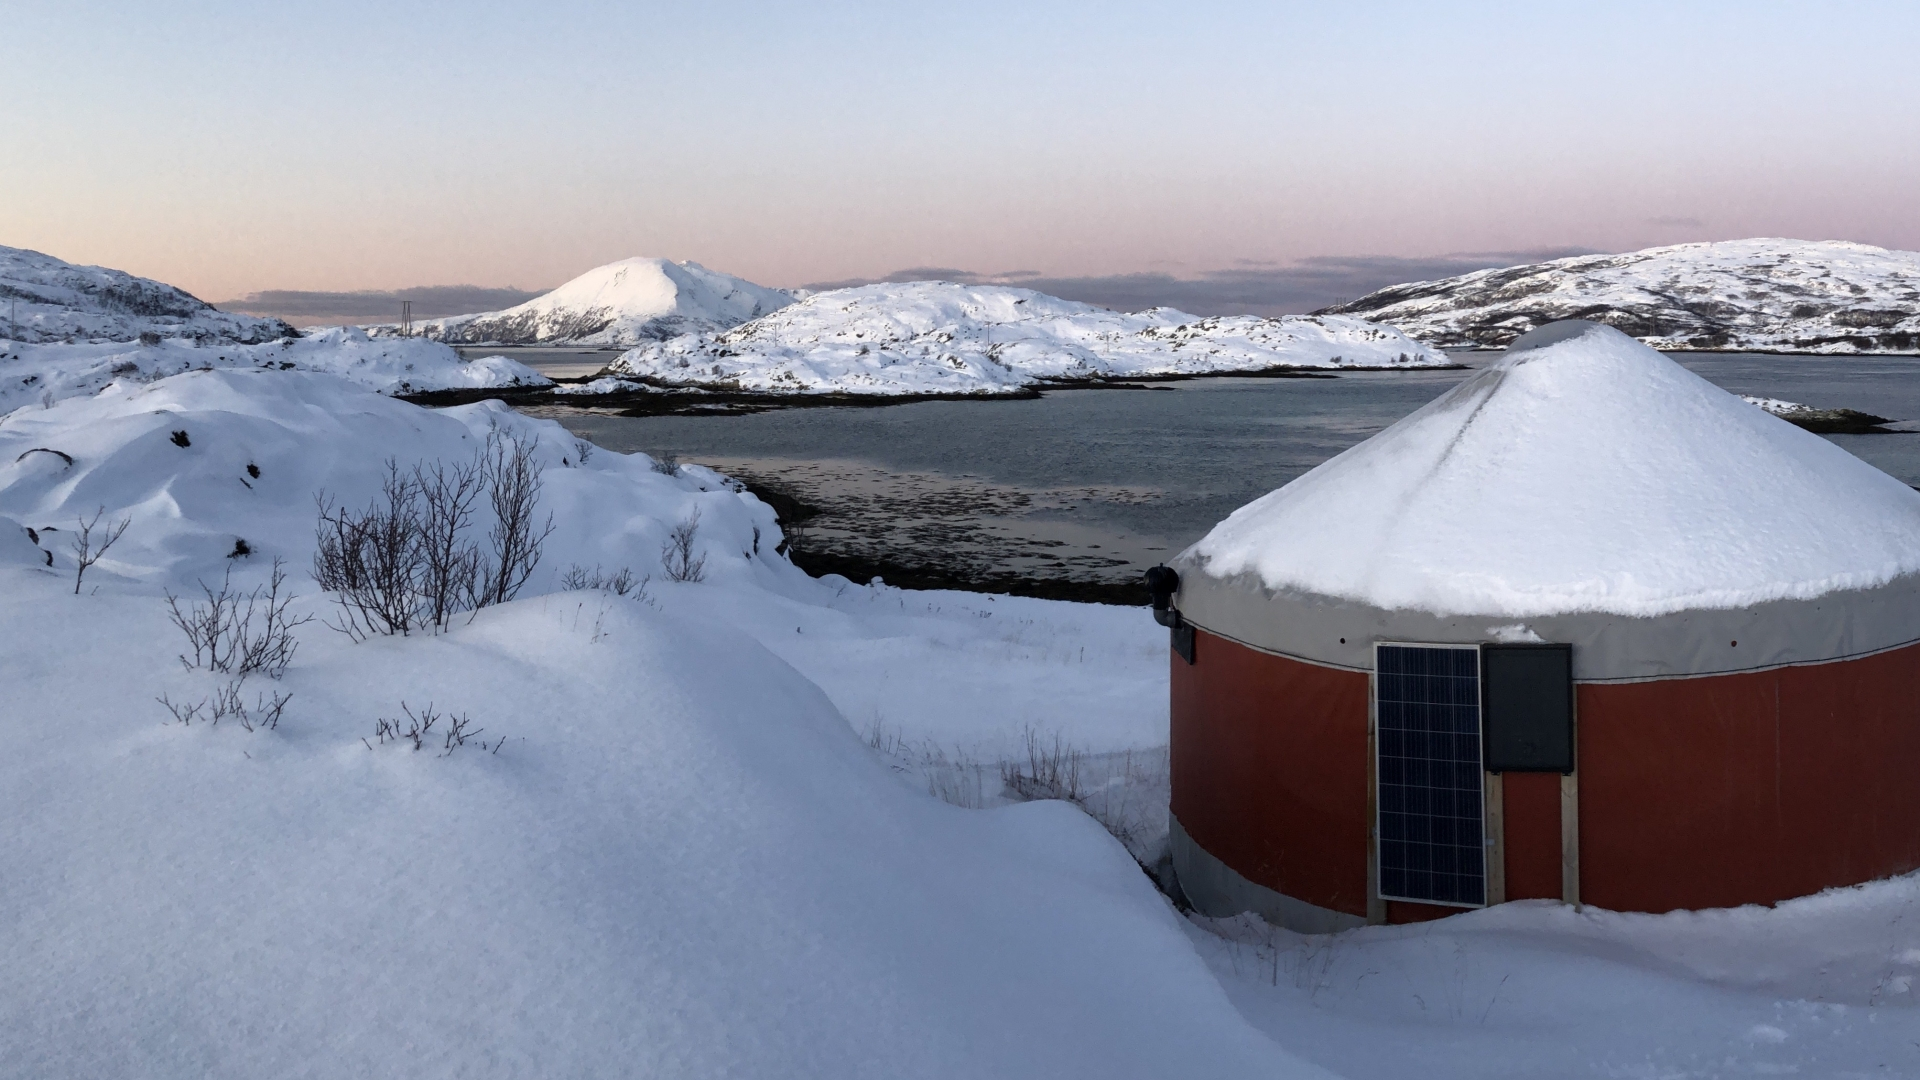 Yurts in snowy landscape by the ocean